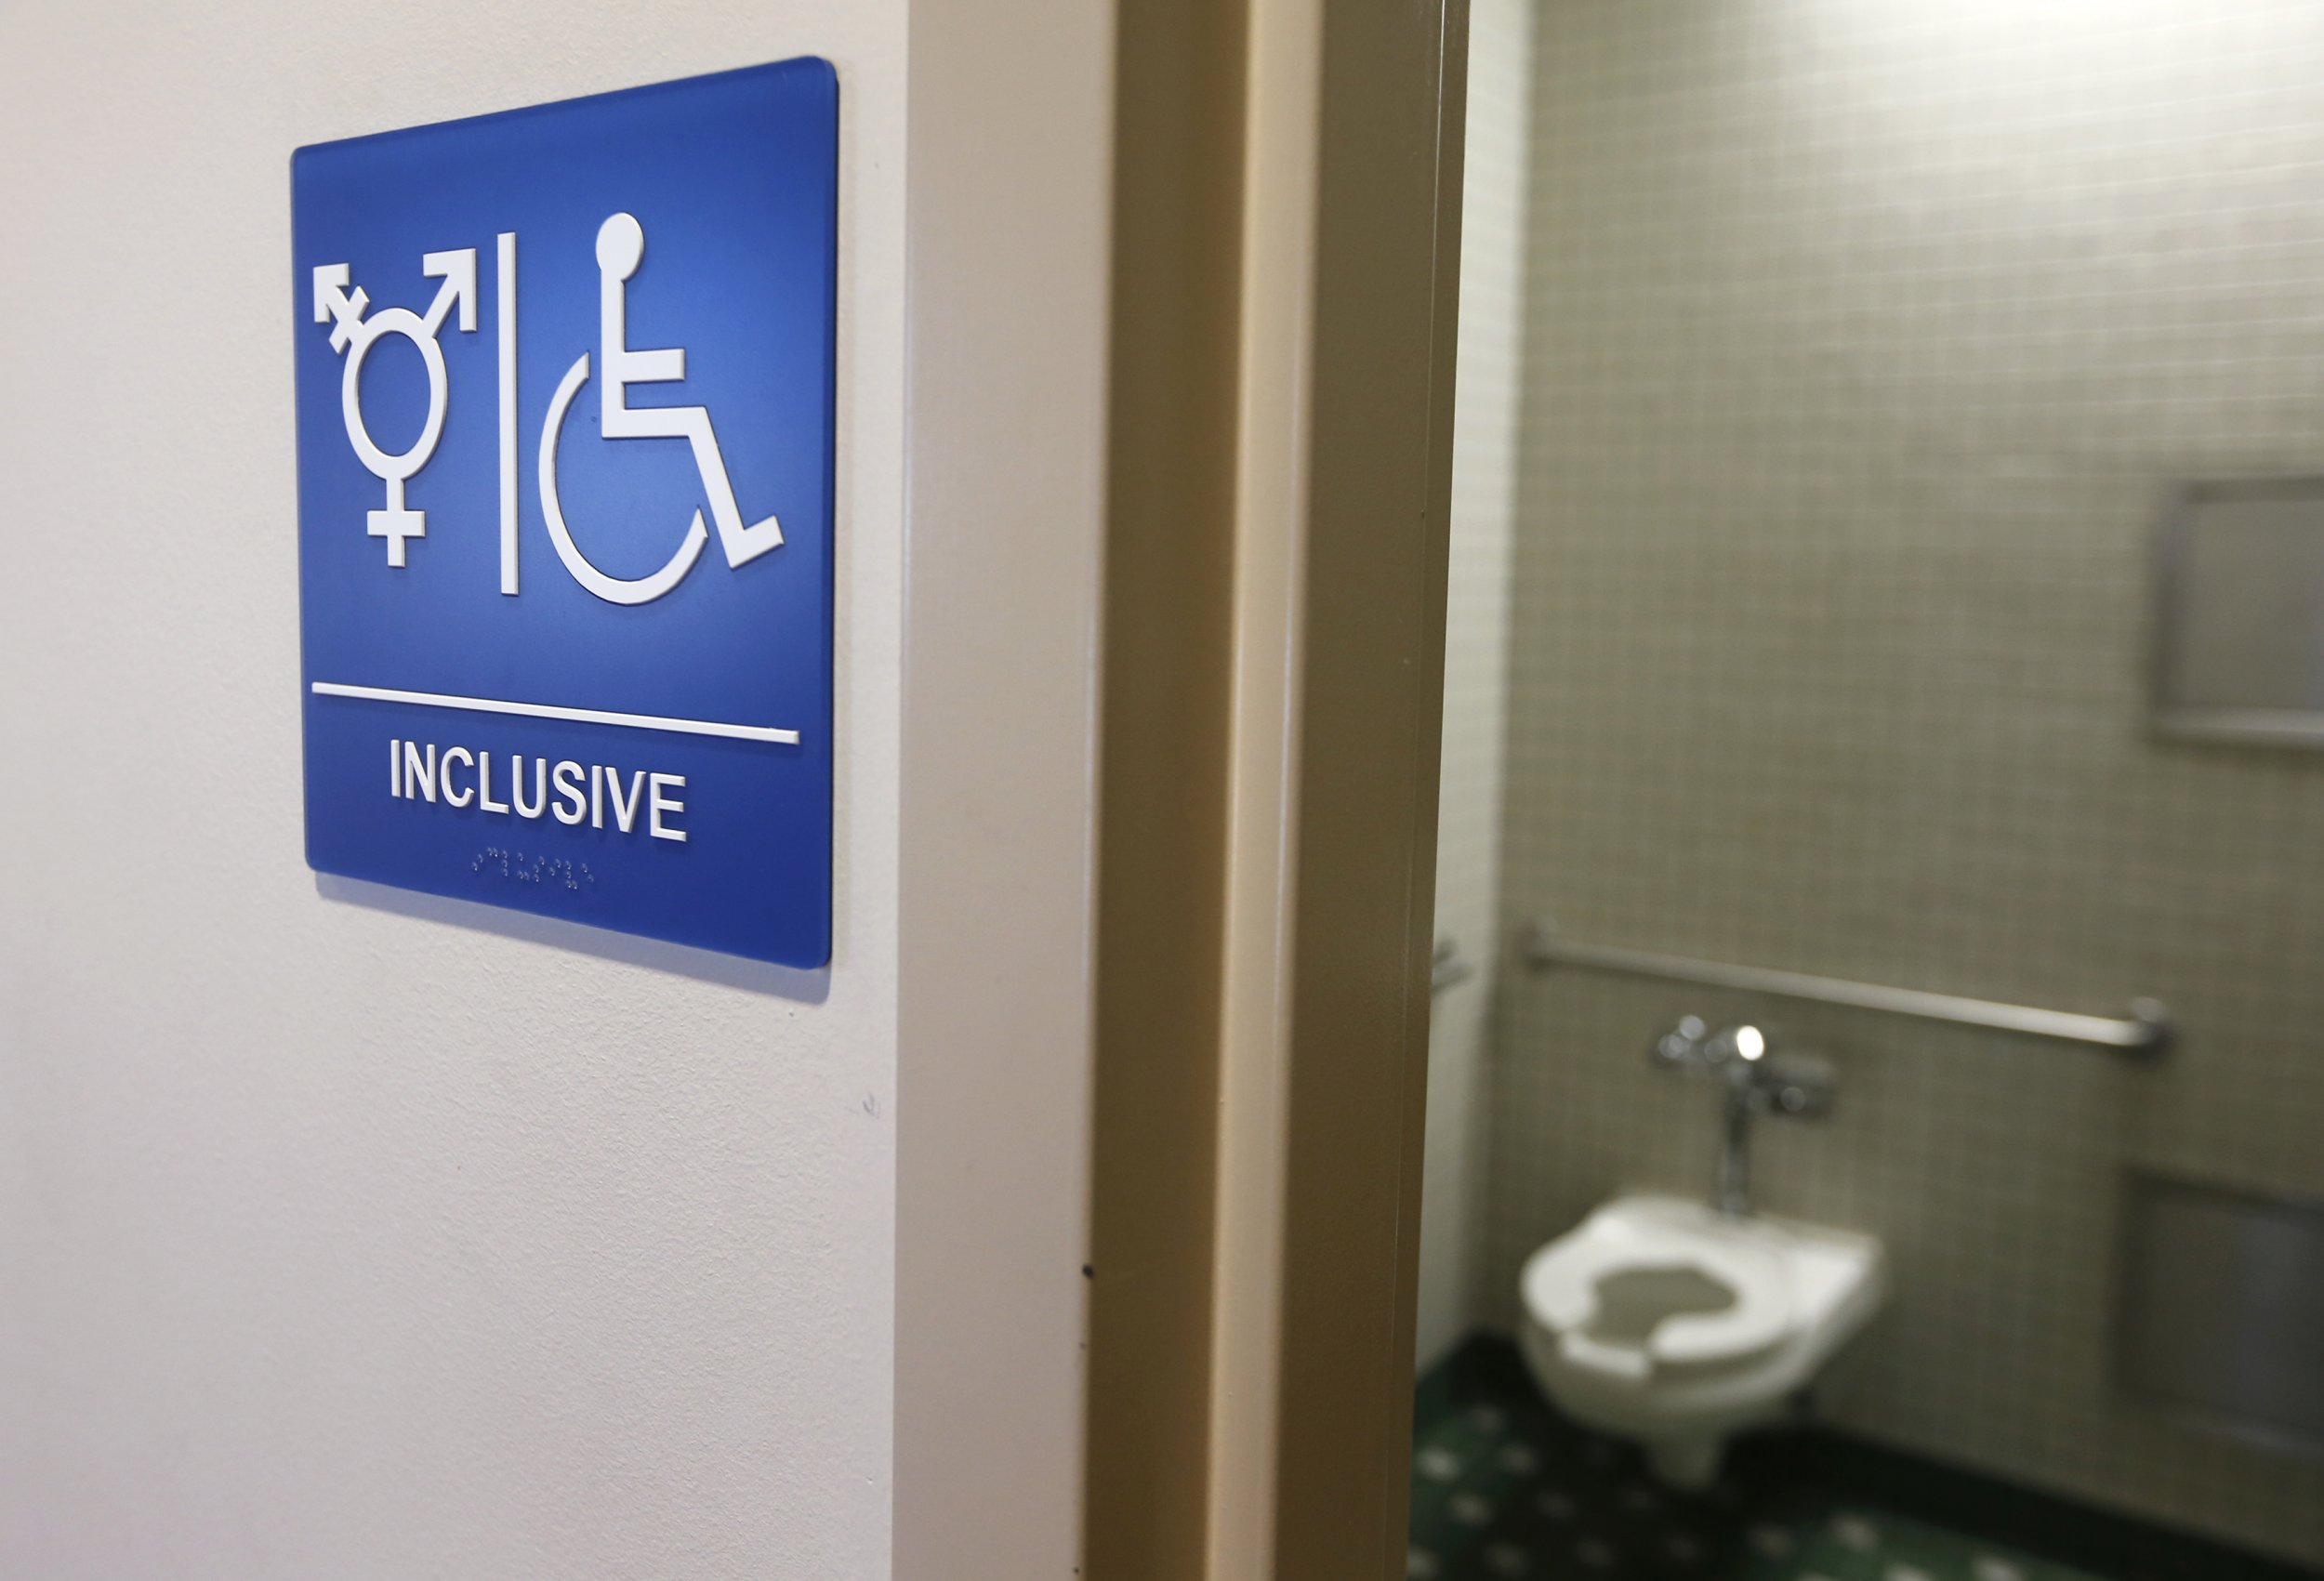 Denying Transgender People Bathroom Access Is Linked to